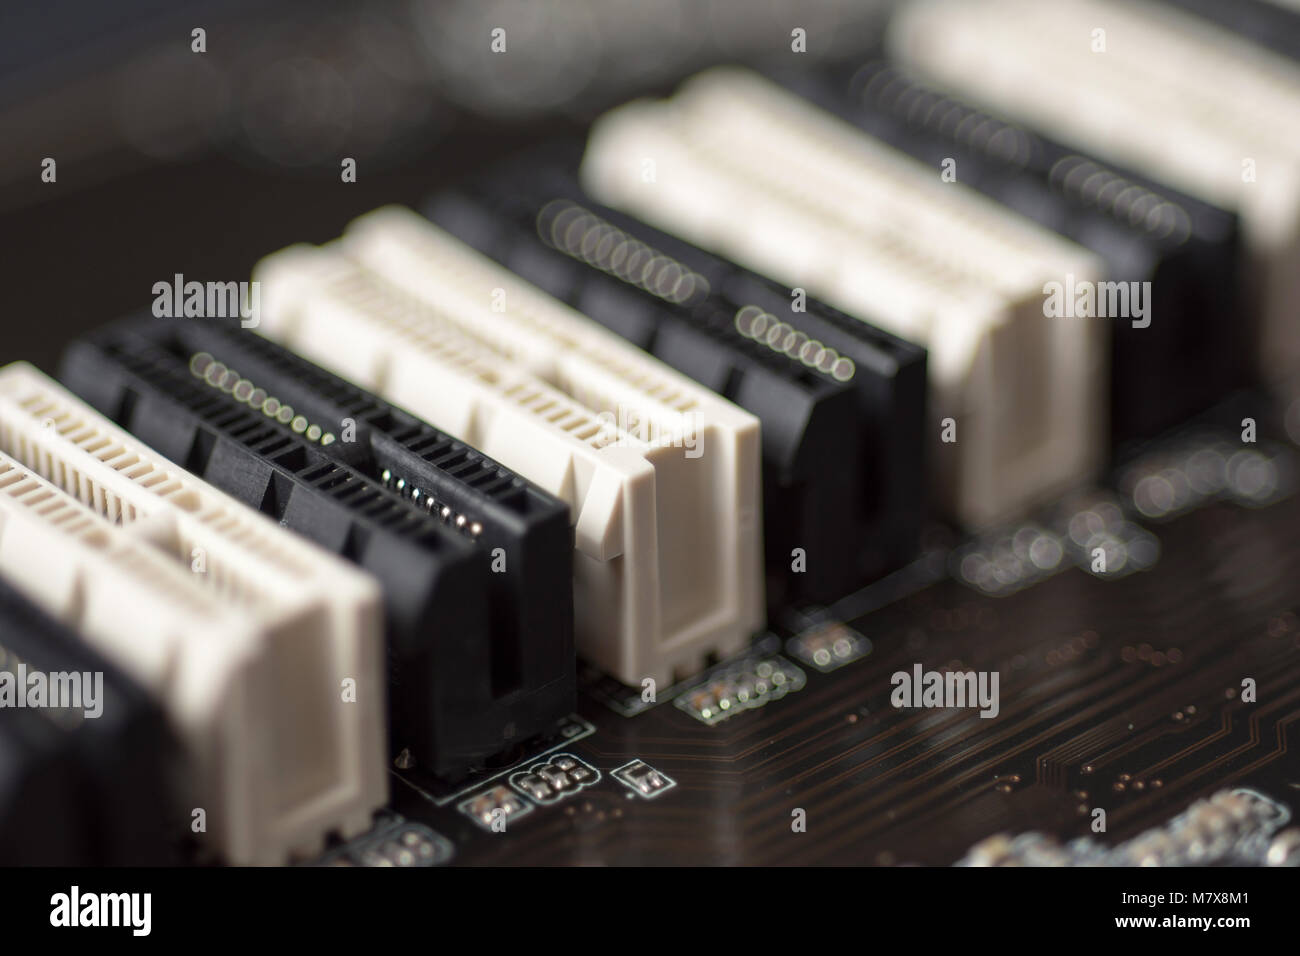 Pci E Slots Close Up Printed Circuit Board Computer Motherboard Background